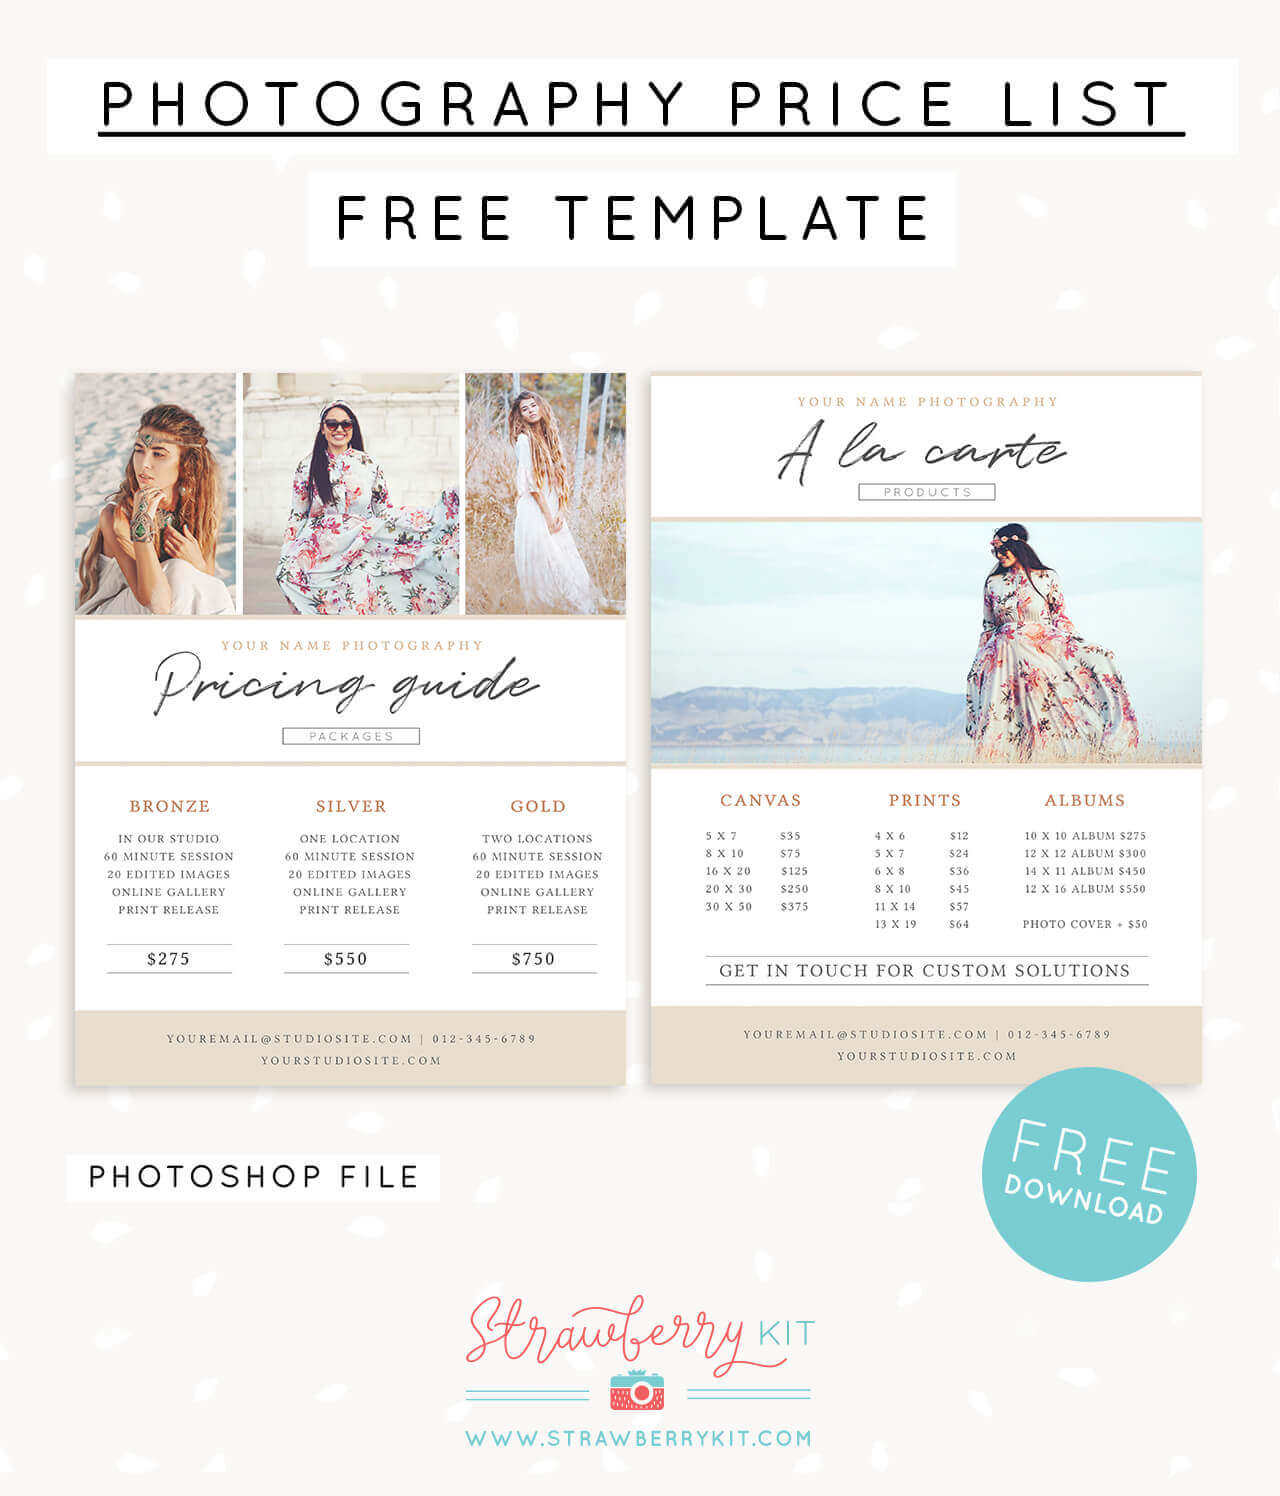 Photographer price list template (FREE!) – Strawberry Kit